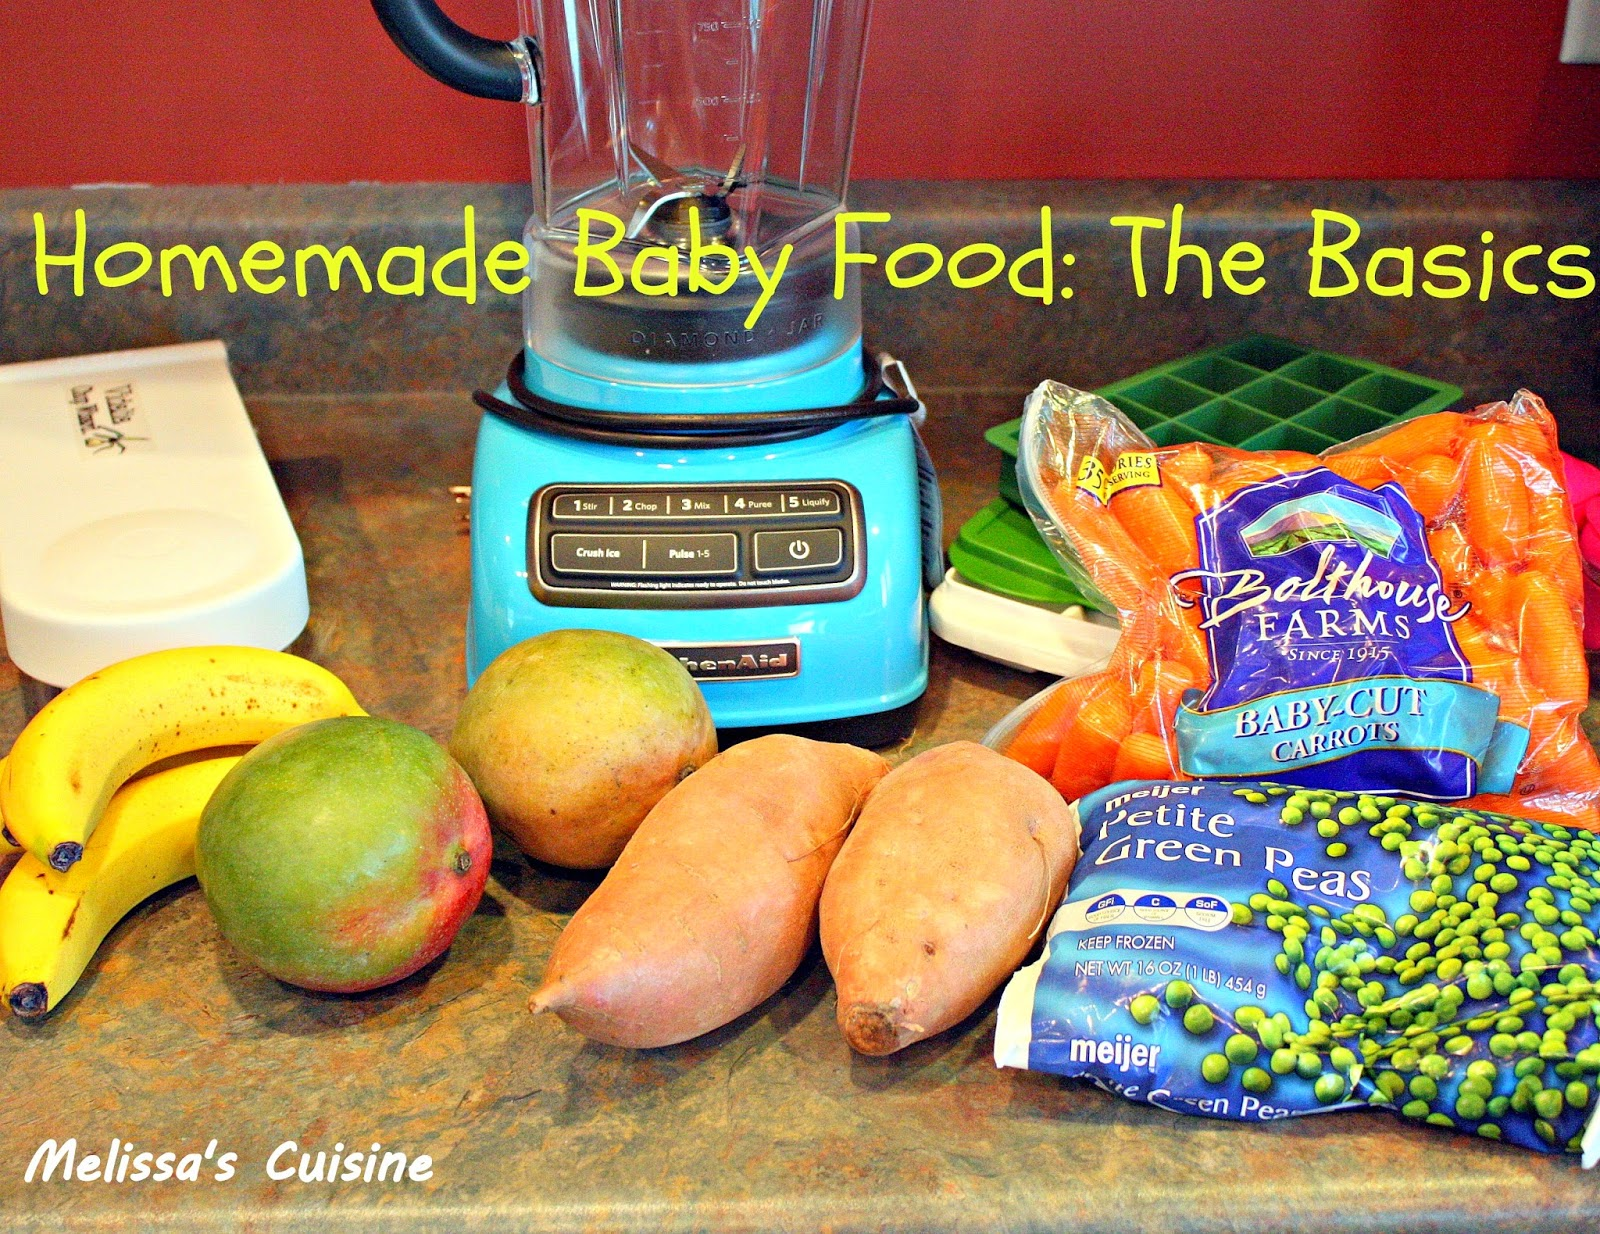 Melissa's Cuisine:  Homemade Baby Food: The Basics